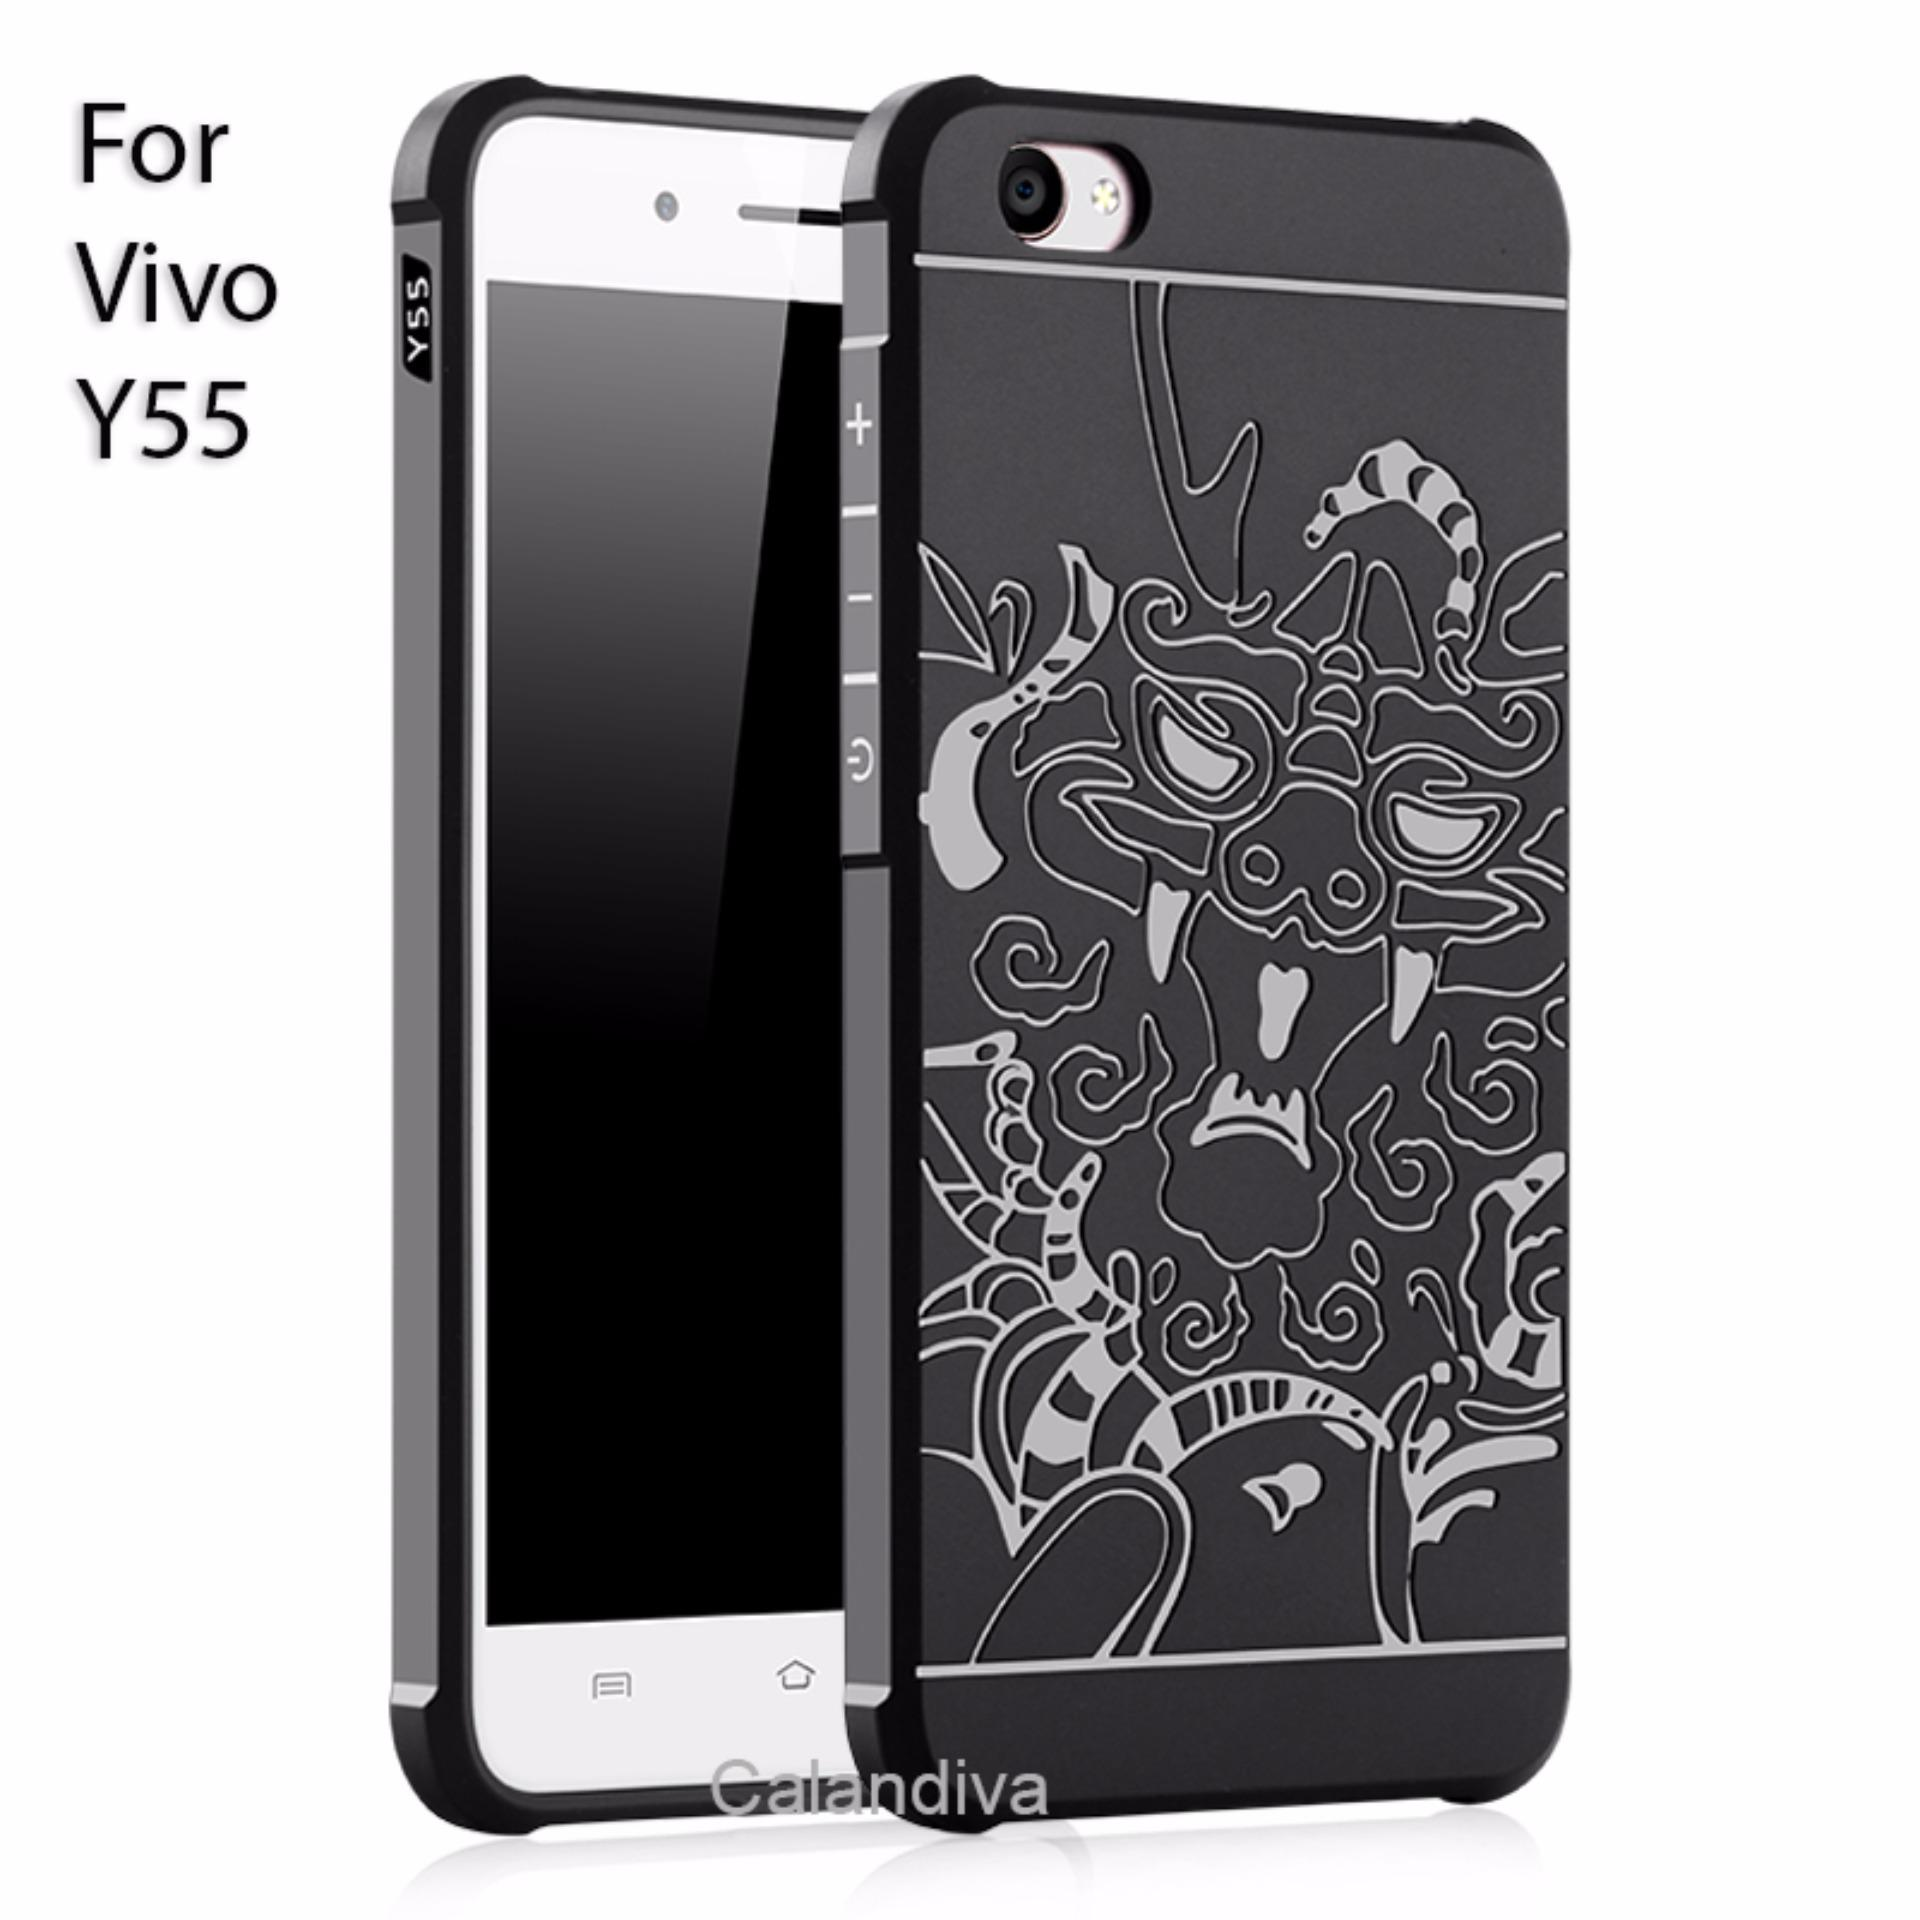 Rp 39.900. Calandiva Dragon Shockproof Hybrid Case for VIVO Y55 , Y55s ...